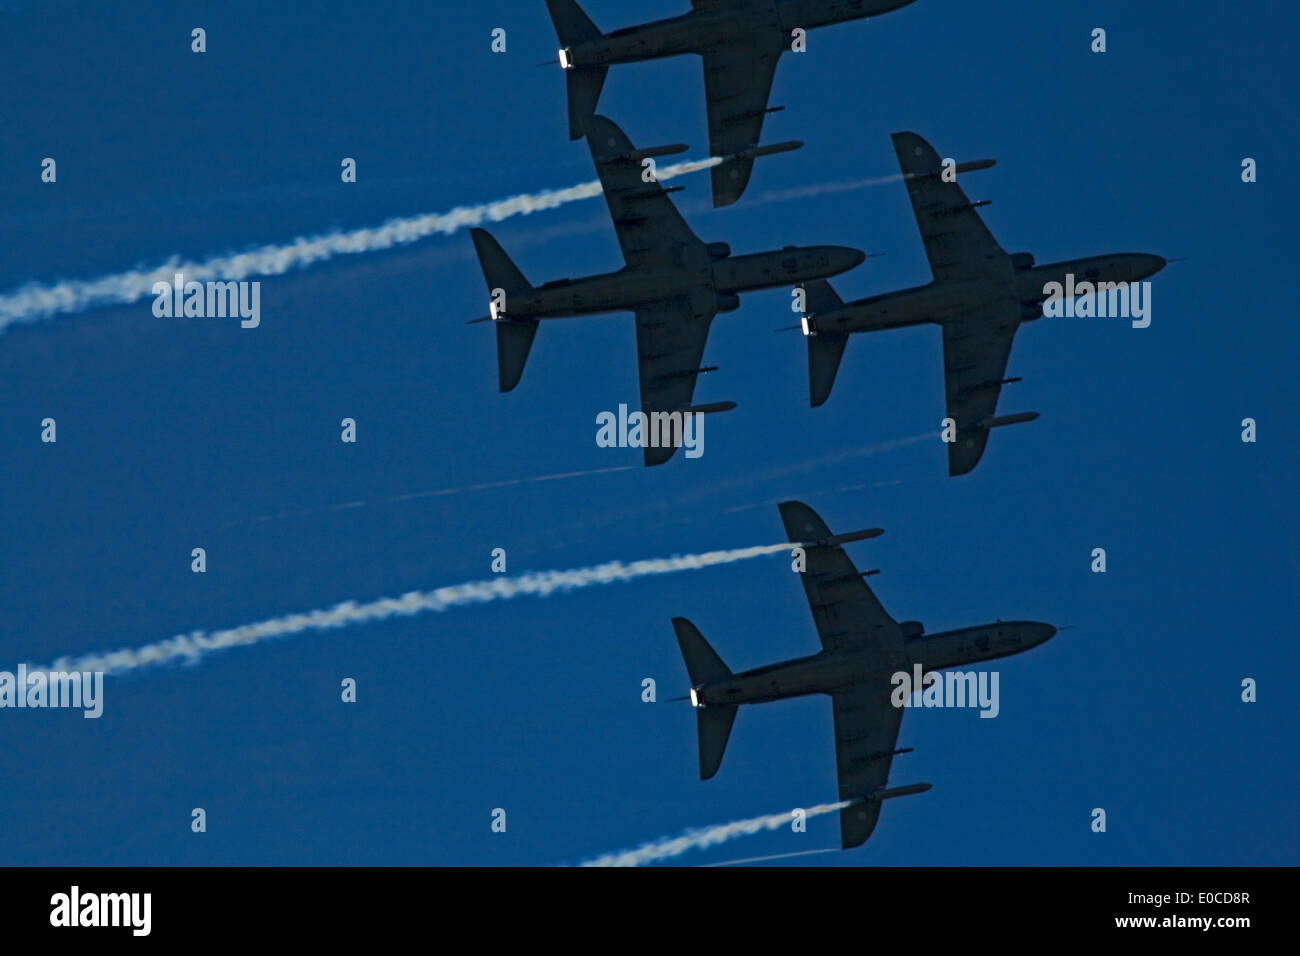 The Midnight Hawks is the aerobatic team of the Finnish Air Force. Helsinki Finland International AirShow in Malmi airport 17.8. - Stock Image